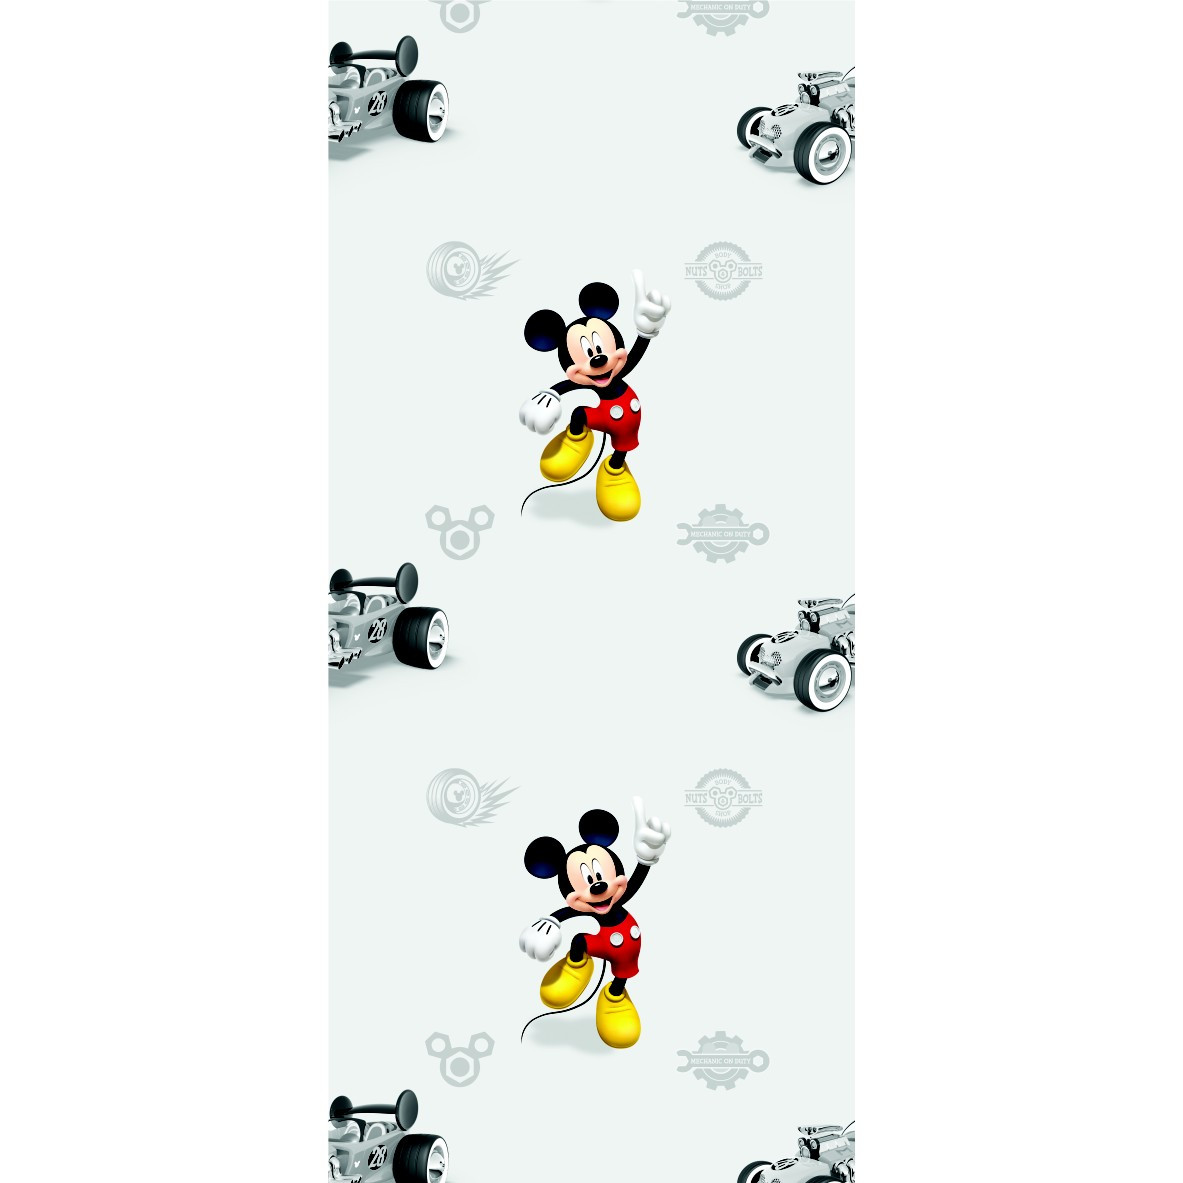 Papier peint Mickey Mouse Disney